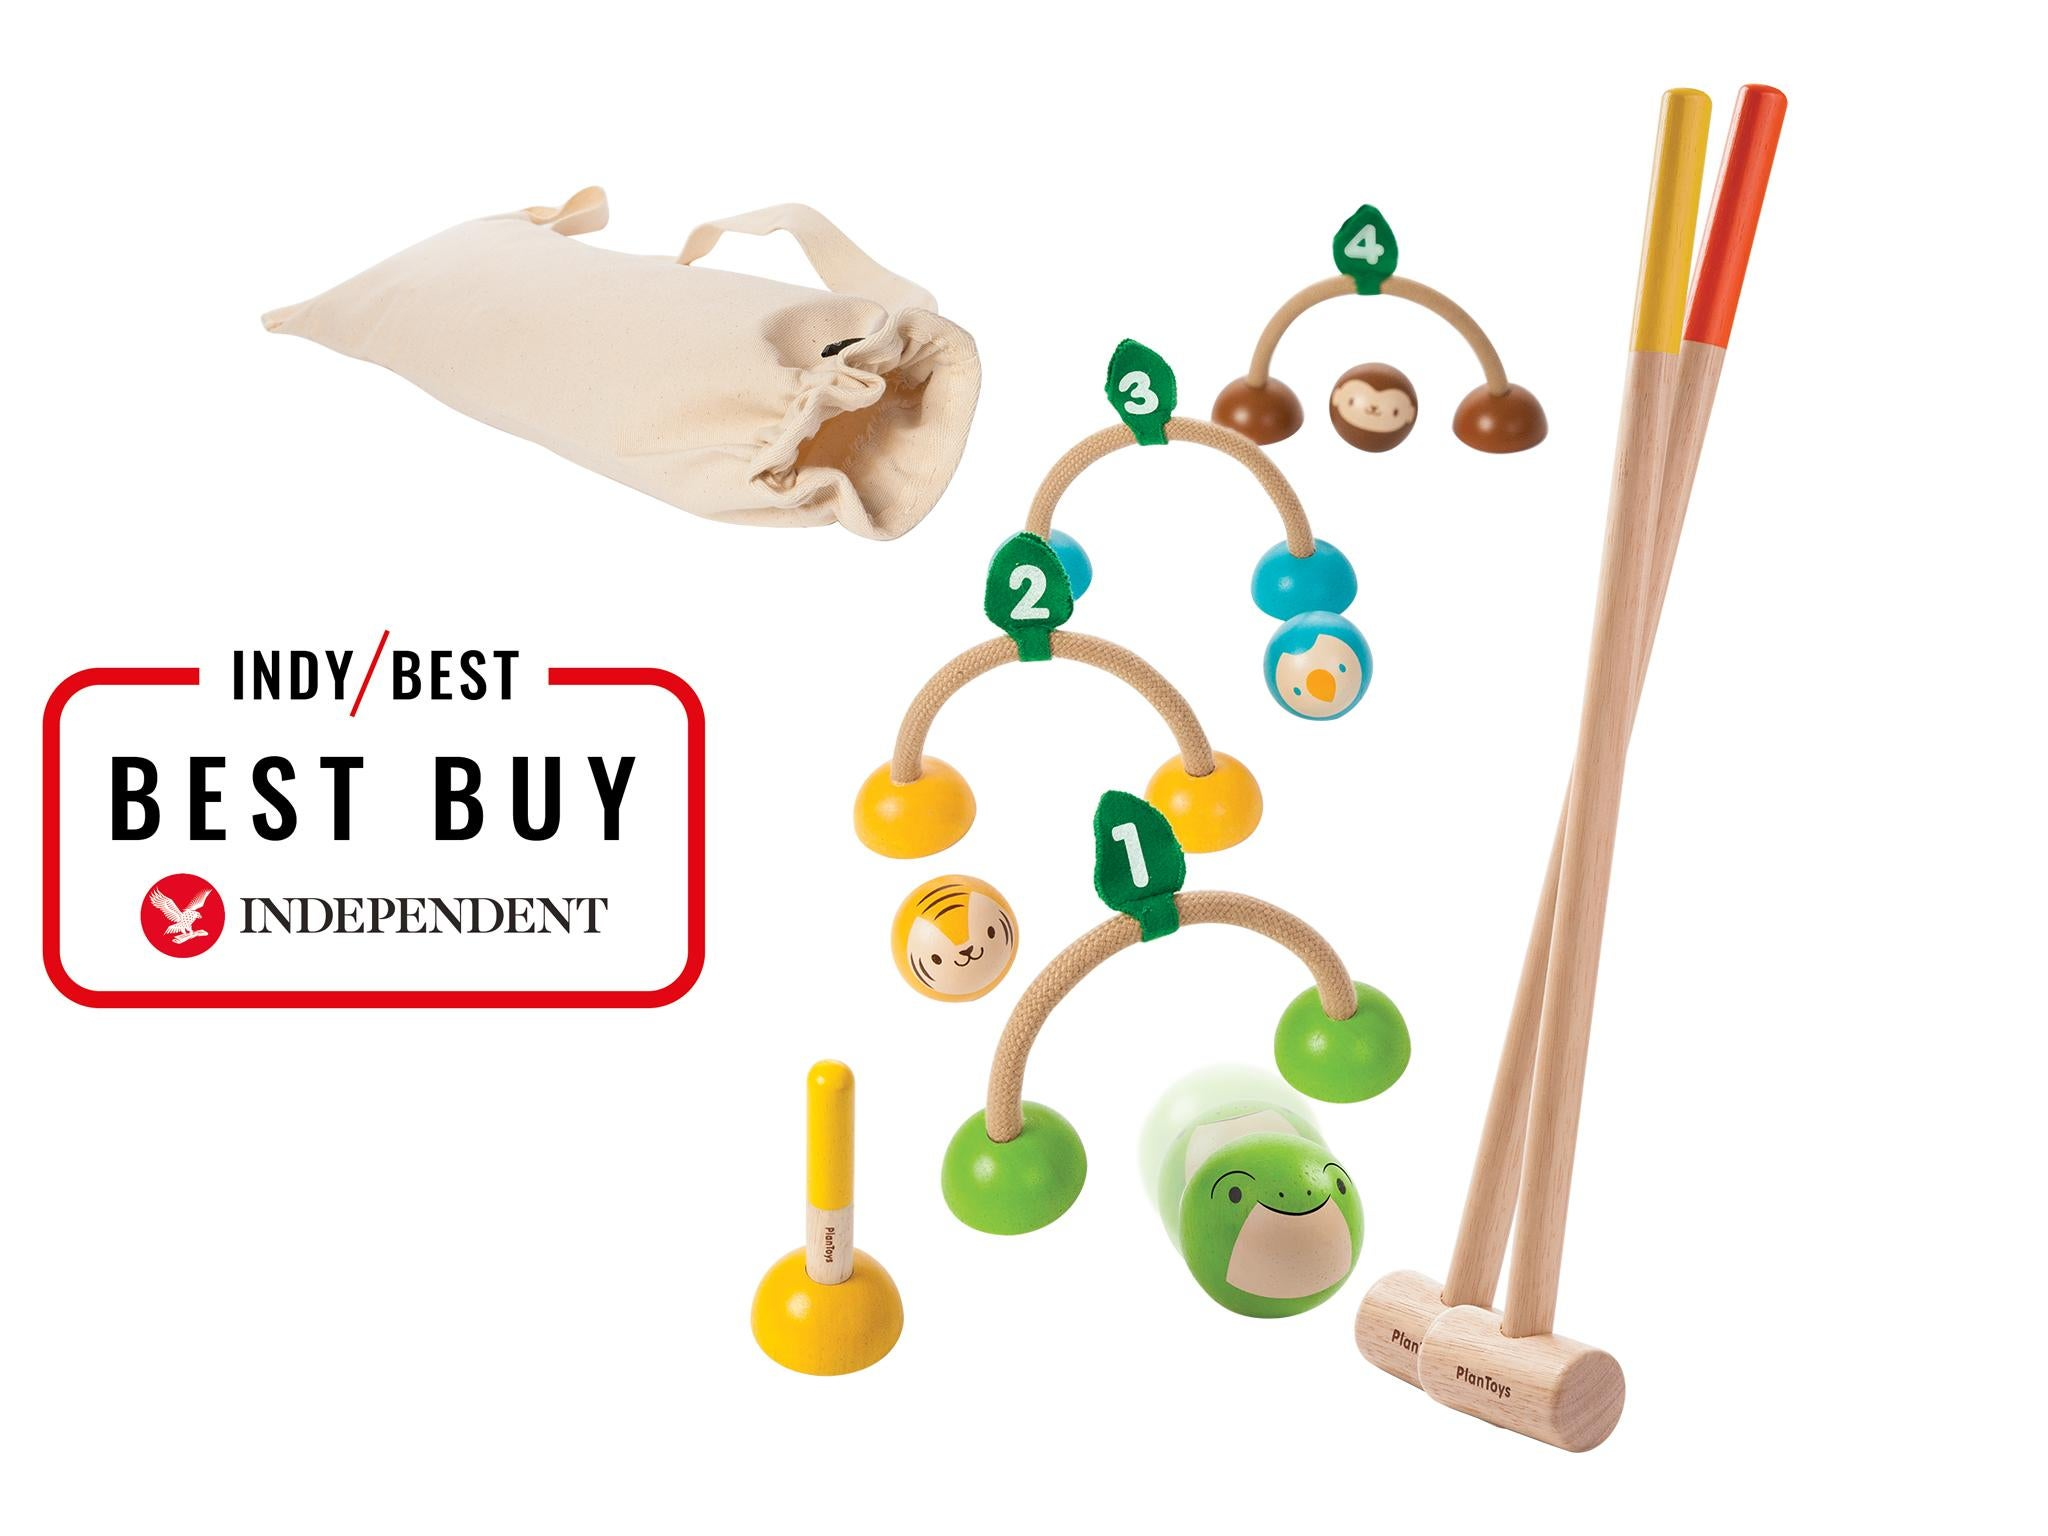 10 Best Eco Friendly Toys The Independent Bouncer Sugar Baby Plan Croquet Set 3995 Babipur